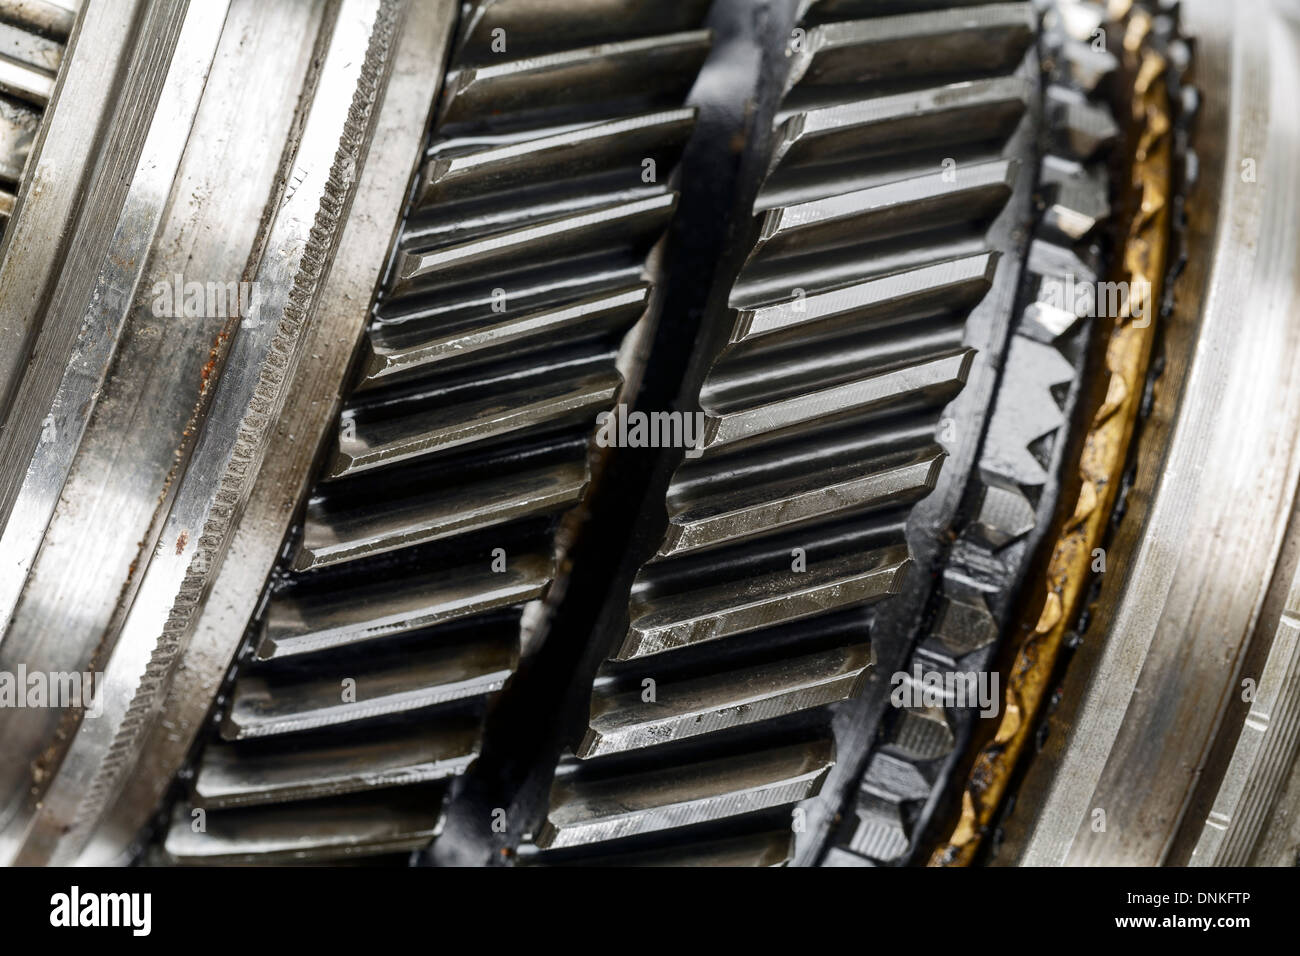 Gearbox mainshaft shown up close - Stock Image